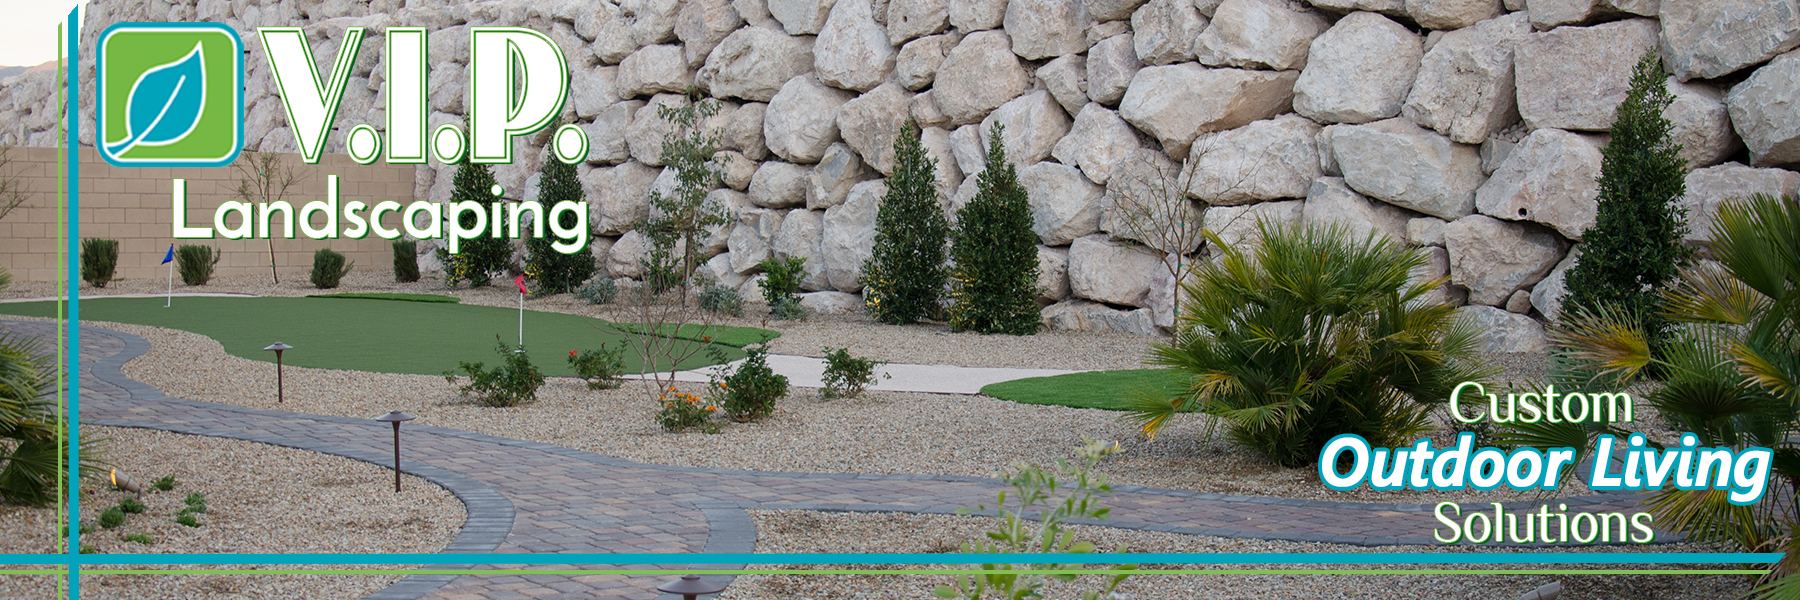 Putting green with boulder rock wall and pavers pathways combined with desert landscaping